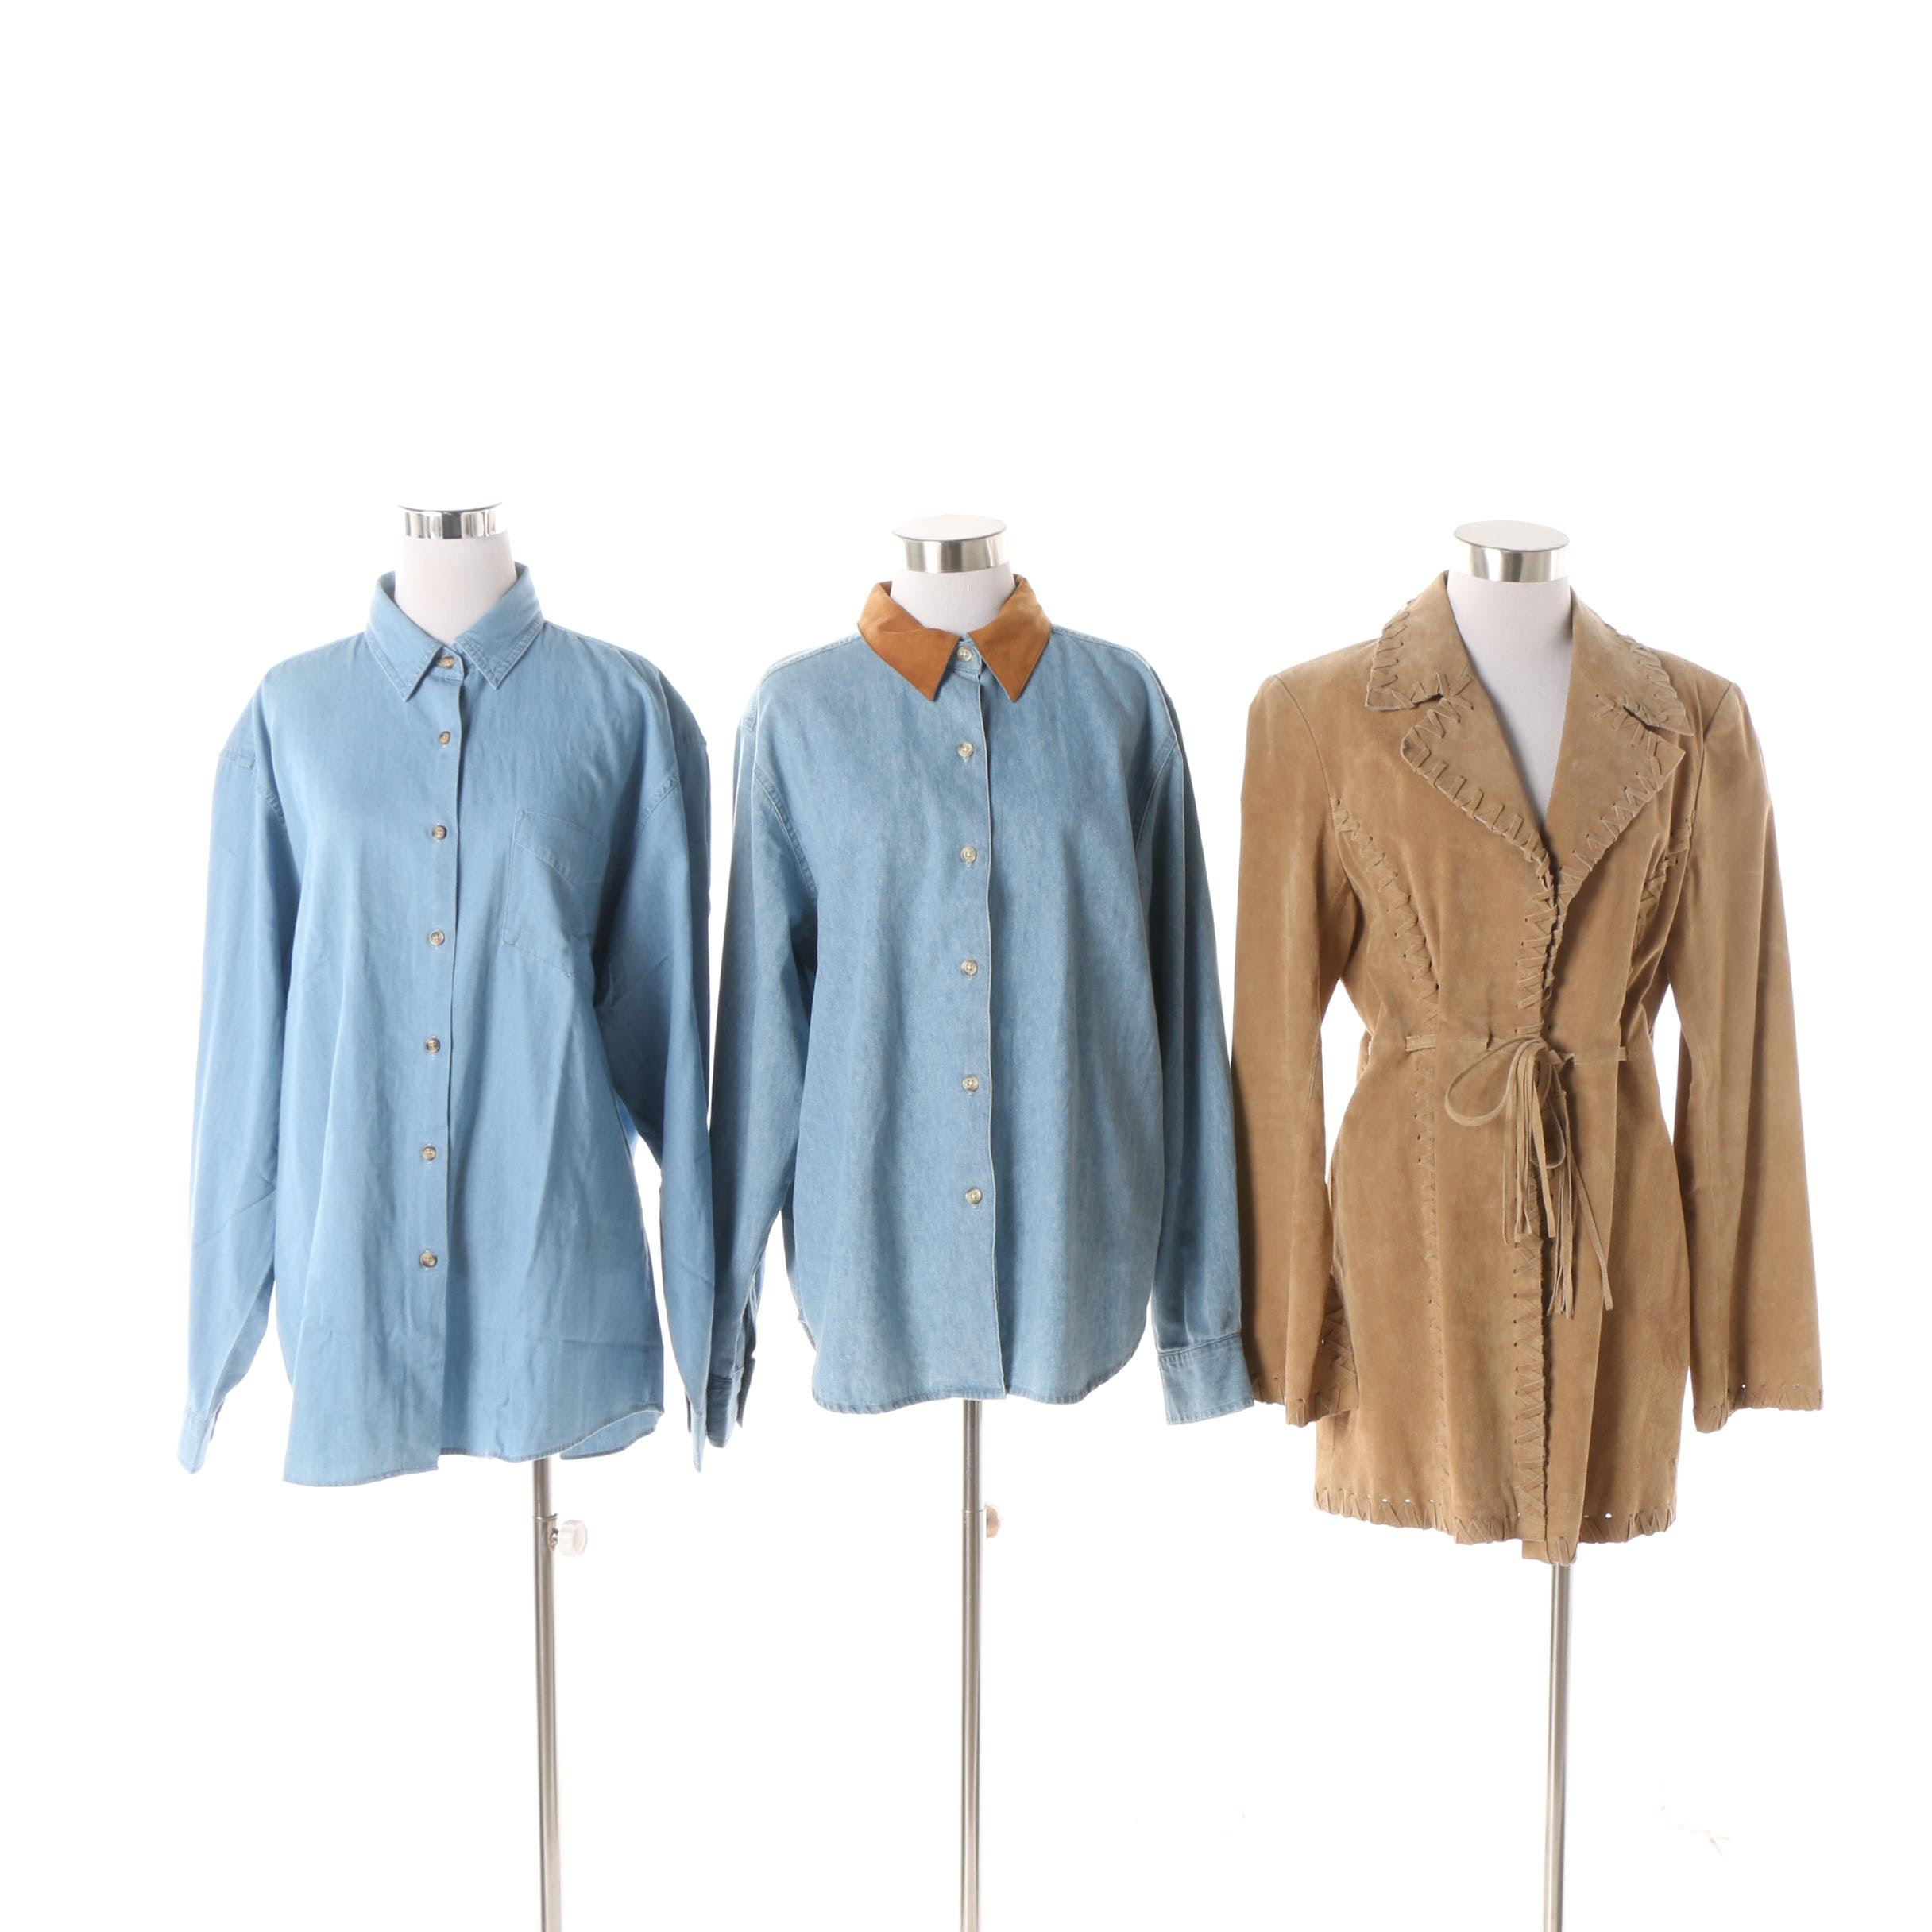 Women's Suede Jacket and Denim Button-Front Shirts including Brandon Thomas